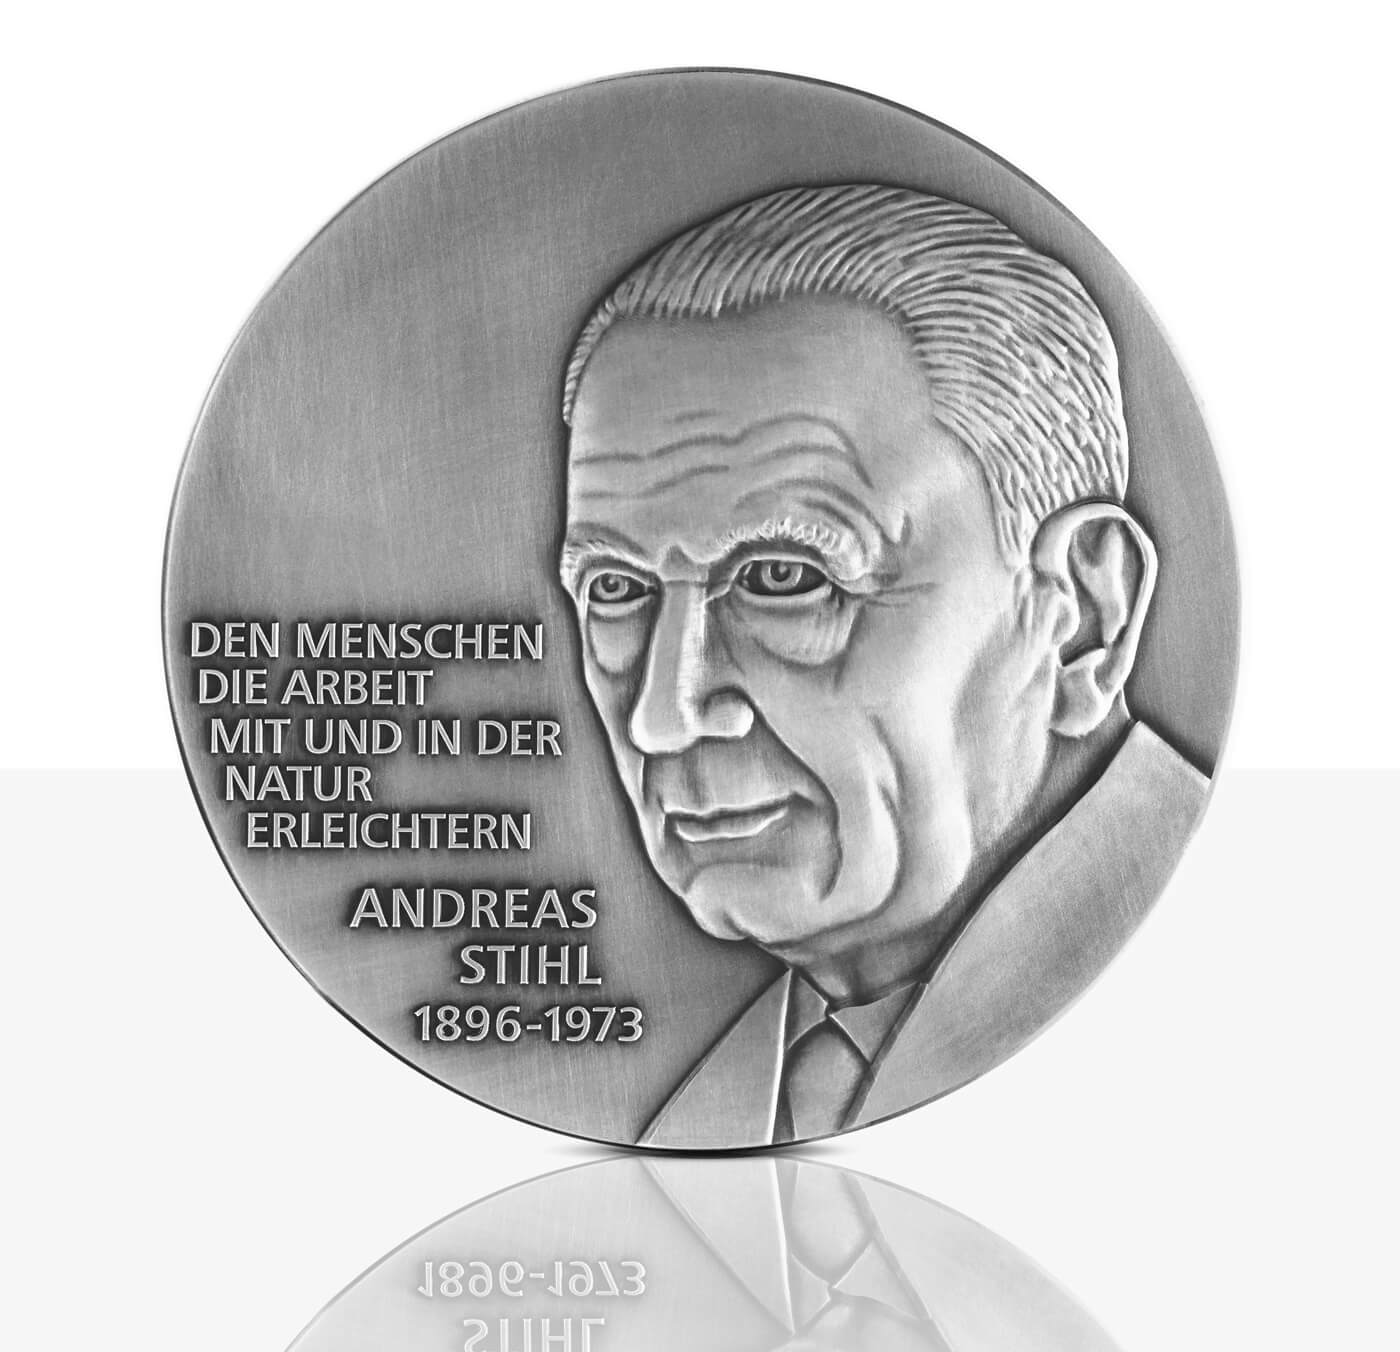 Andreas Stihl - Silver medal in high relief